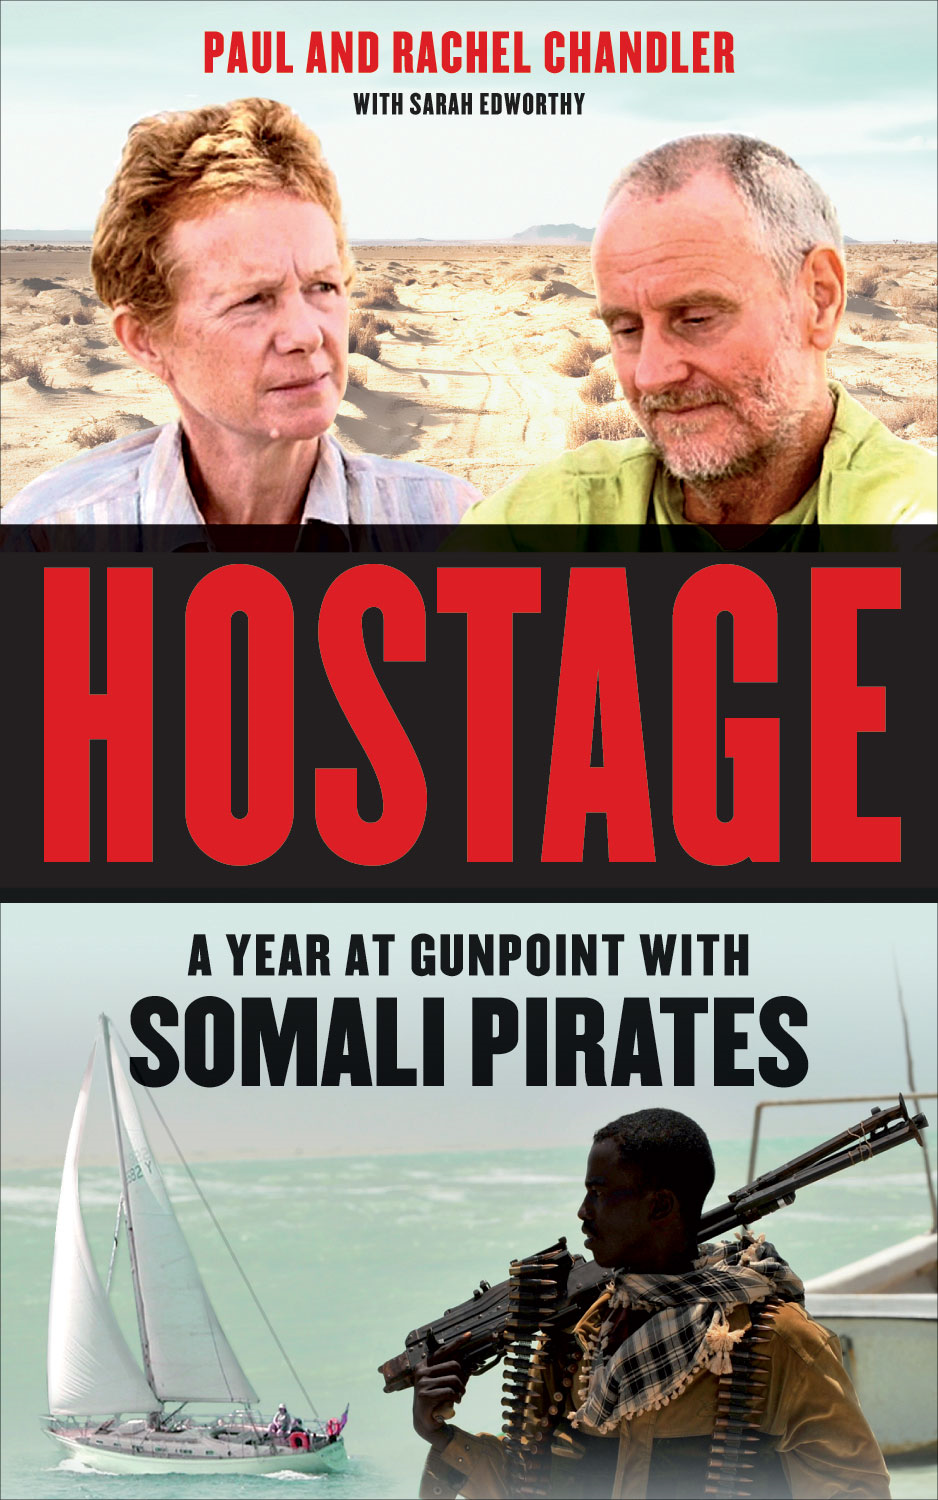 Hostage: A Year at Gunpoint with Somali Pirates